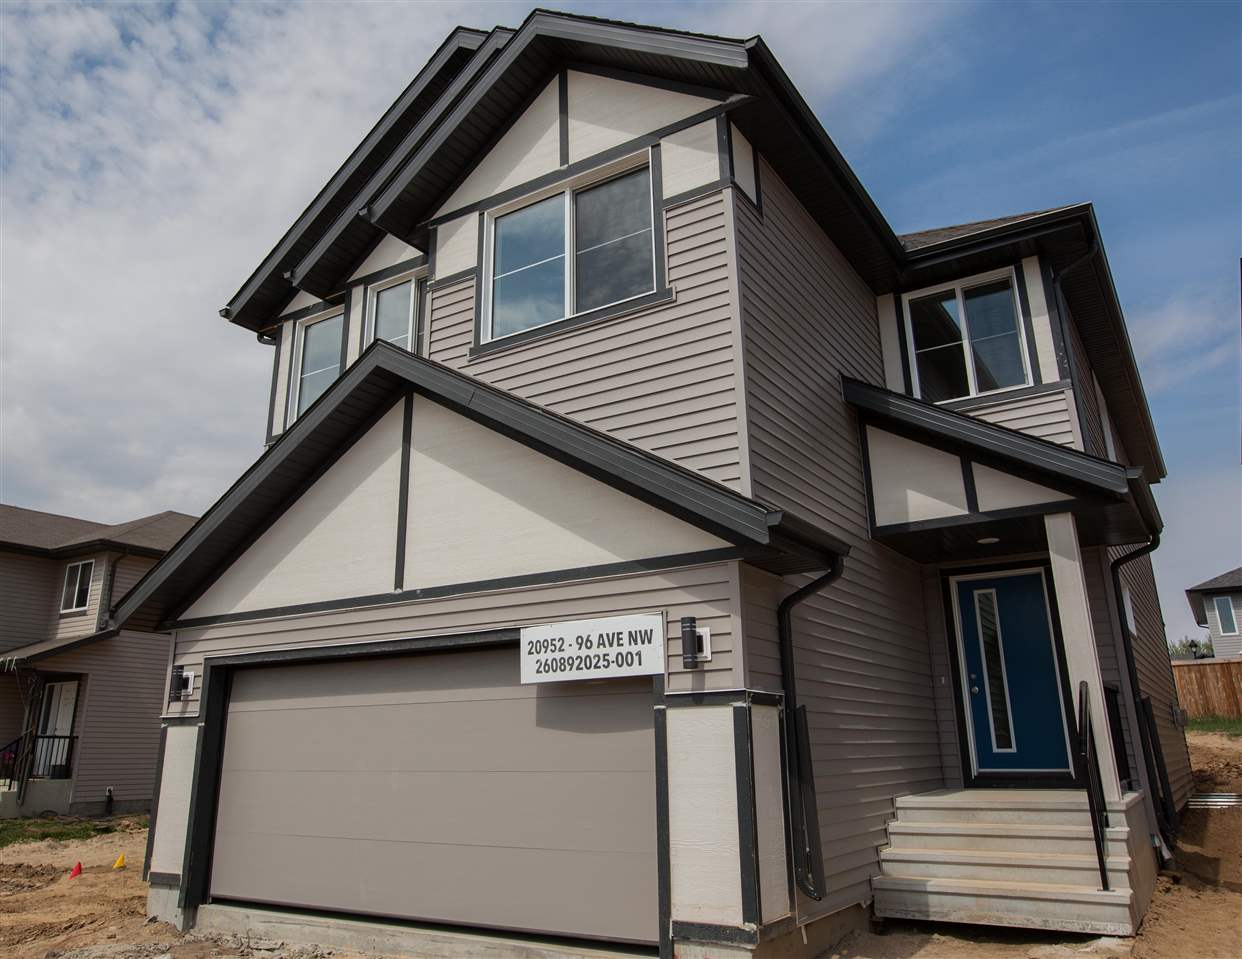 MLS® listing #E4156598 for sale located at 20952 96 Avenue